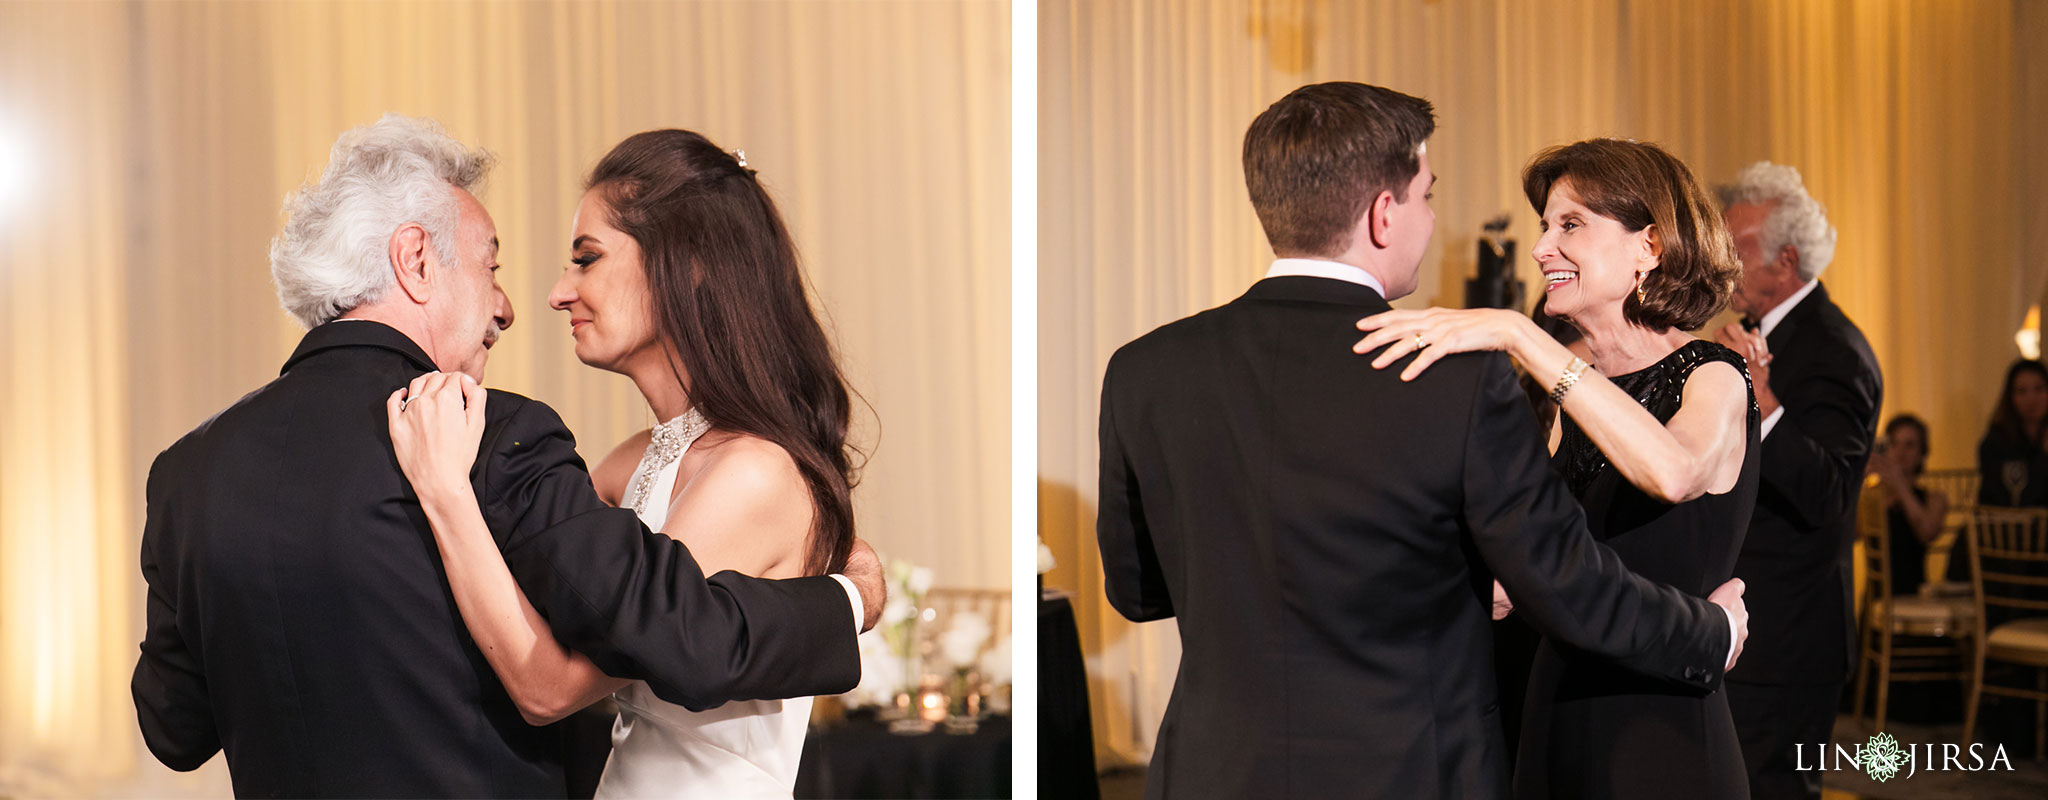 25 Ritz Carlton Laguna Niguel Wedding Photography